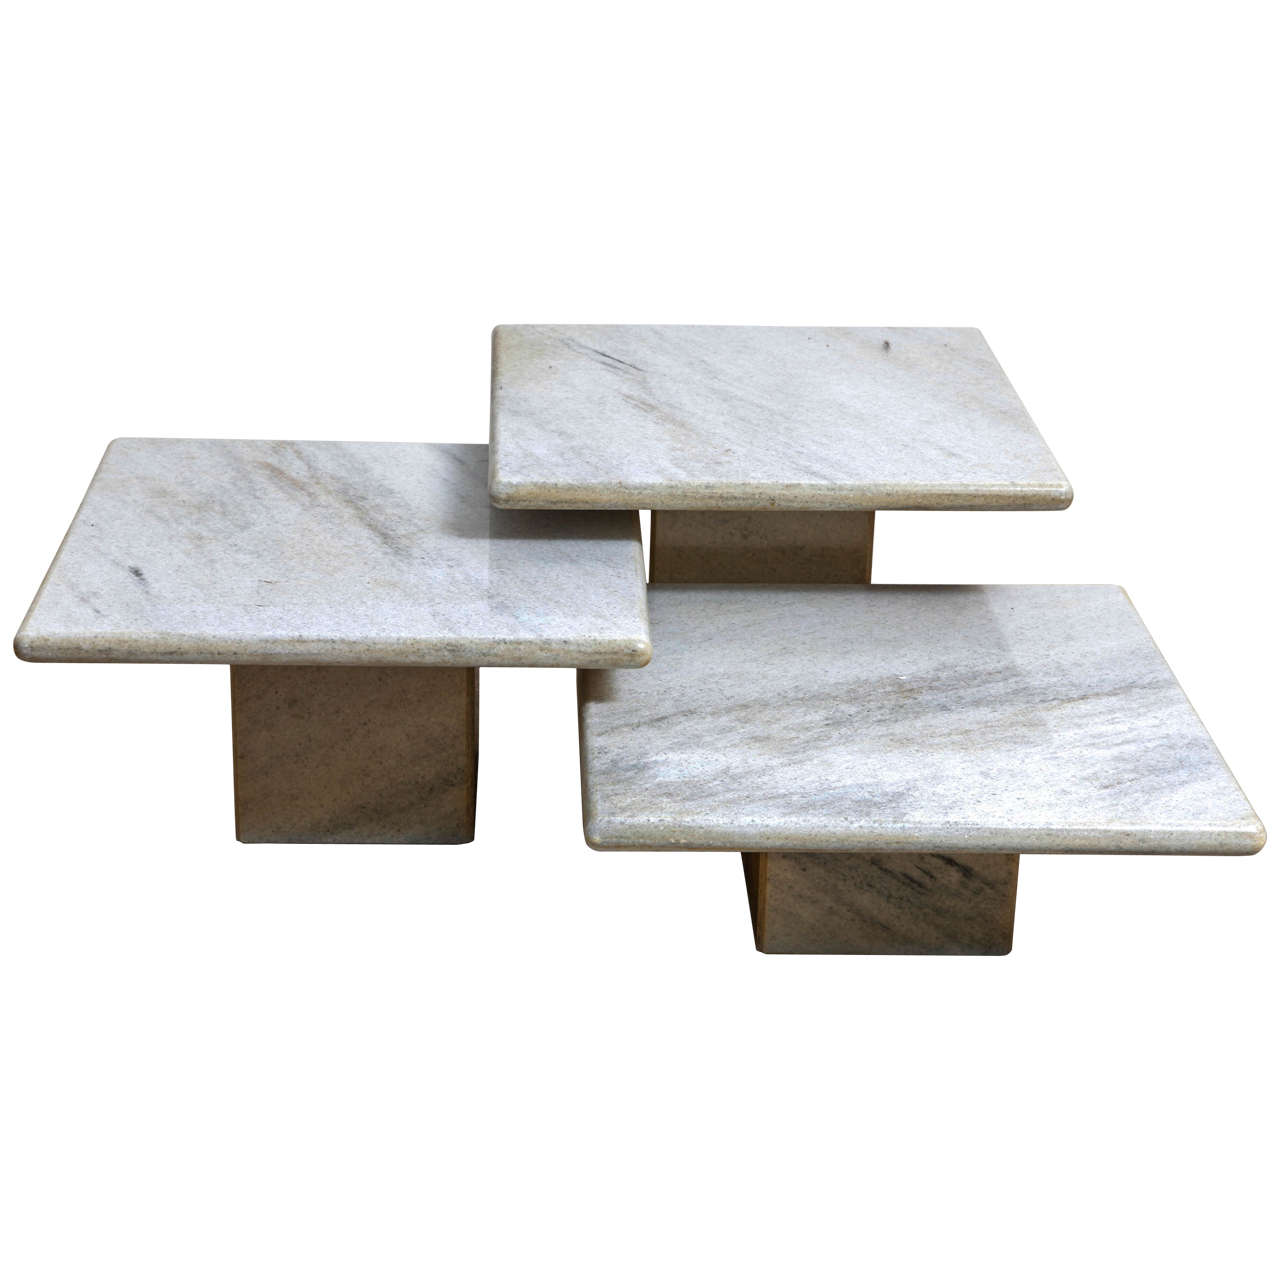 A Set Of 3 Italian Marati Midcentury Modern Marble Coffee,End Tables For  Sale